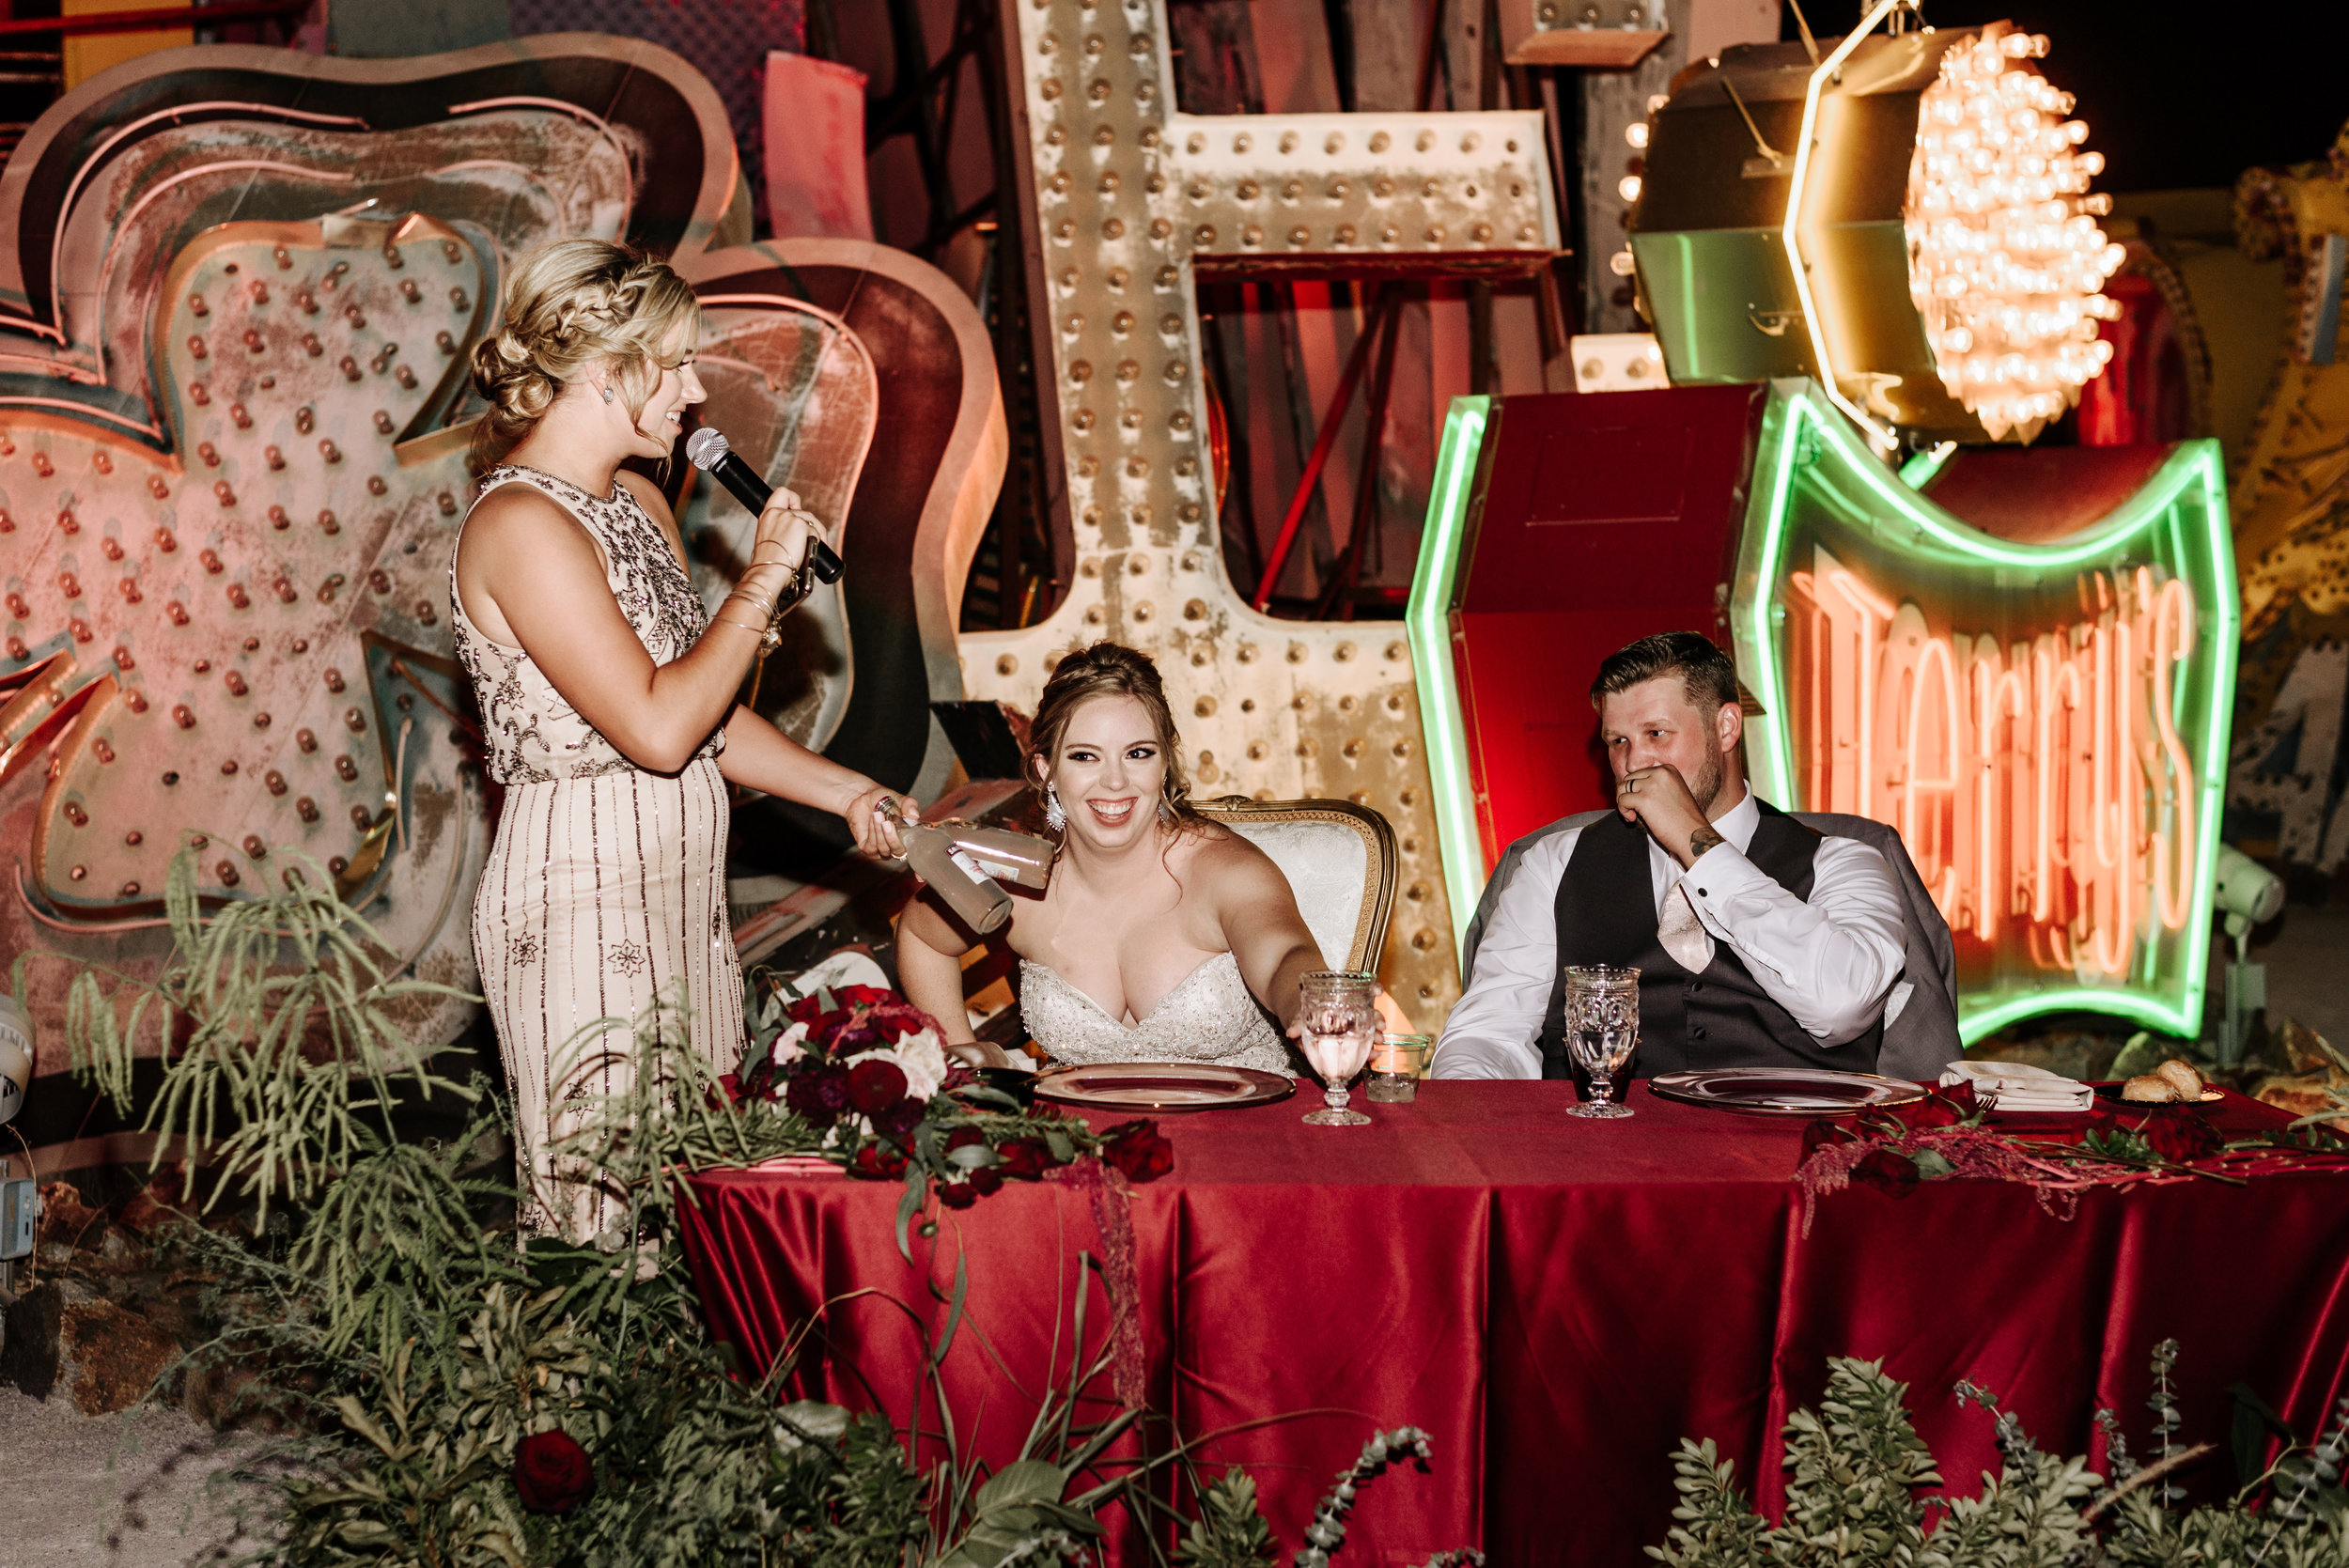 Neon-Museum-Wedding-Las-Vegas-Nevada-Golden-Nugget-Photography-by-V-Ally-and-Dan-7072.jpg